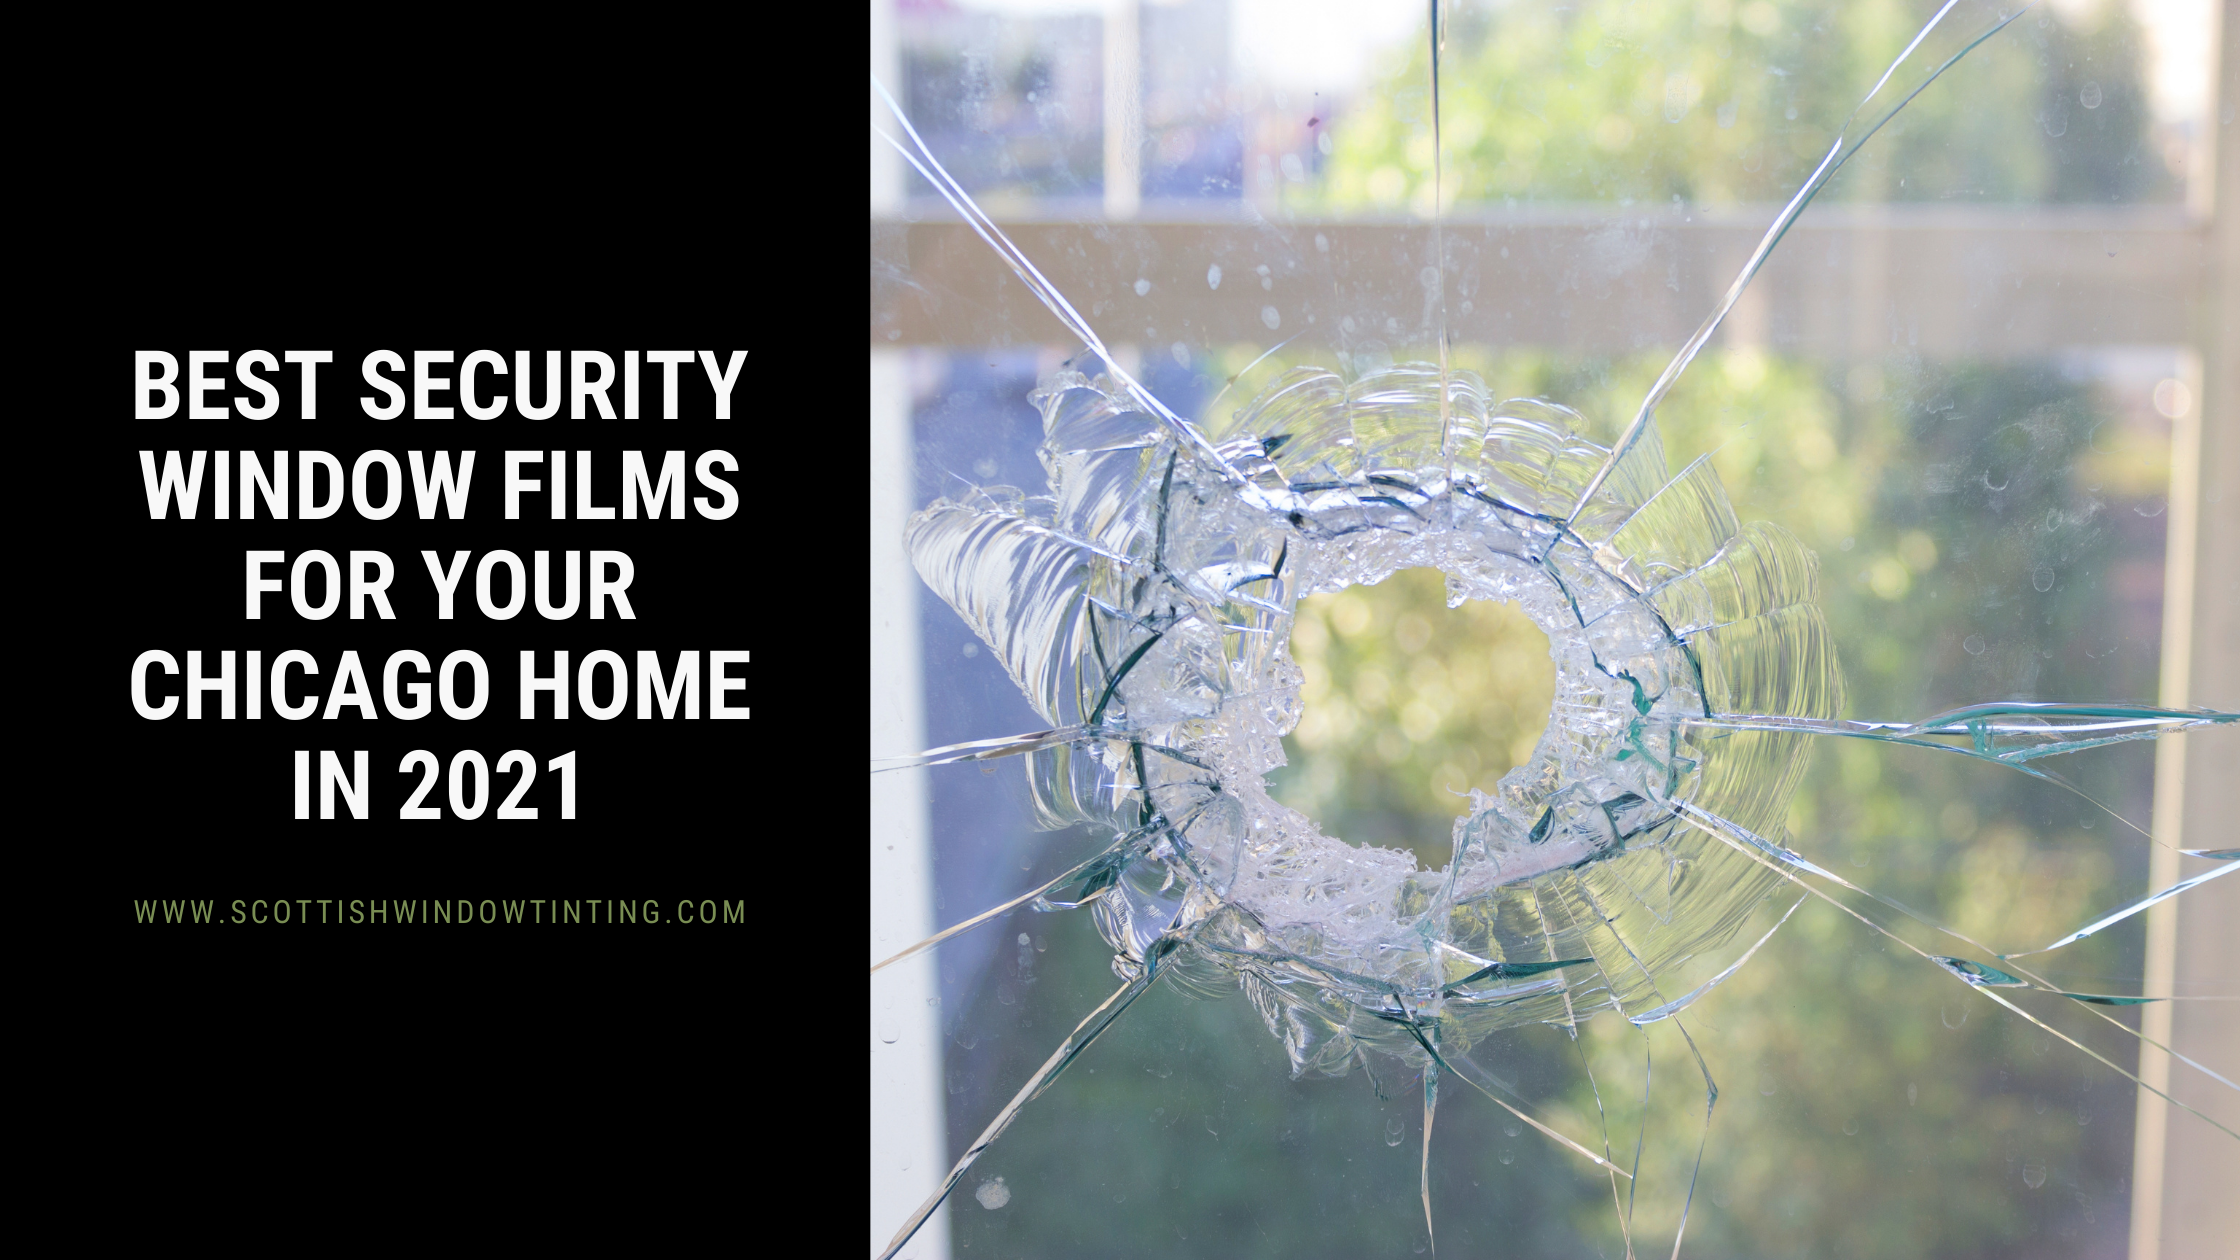 Best Security Window Films for your Chicago Home in 2021